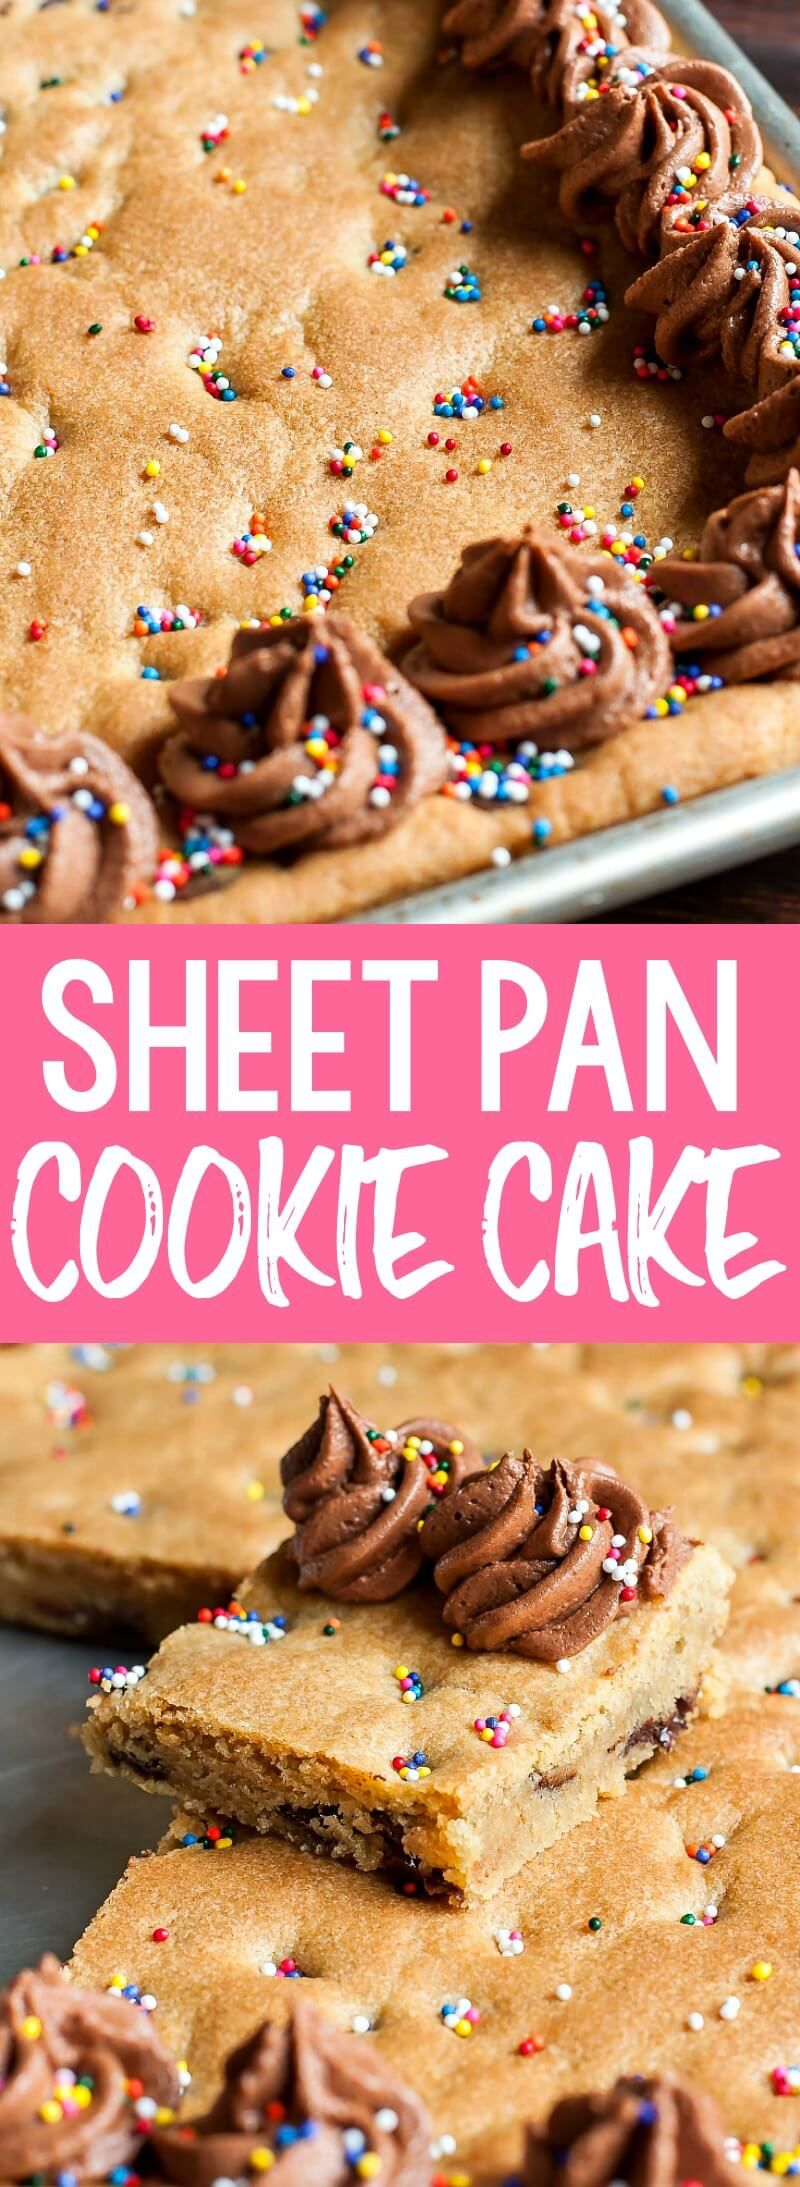 Sheet Pan Cookie Cake